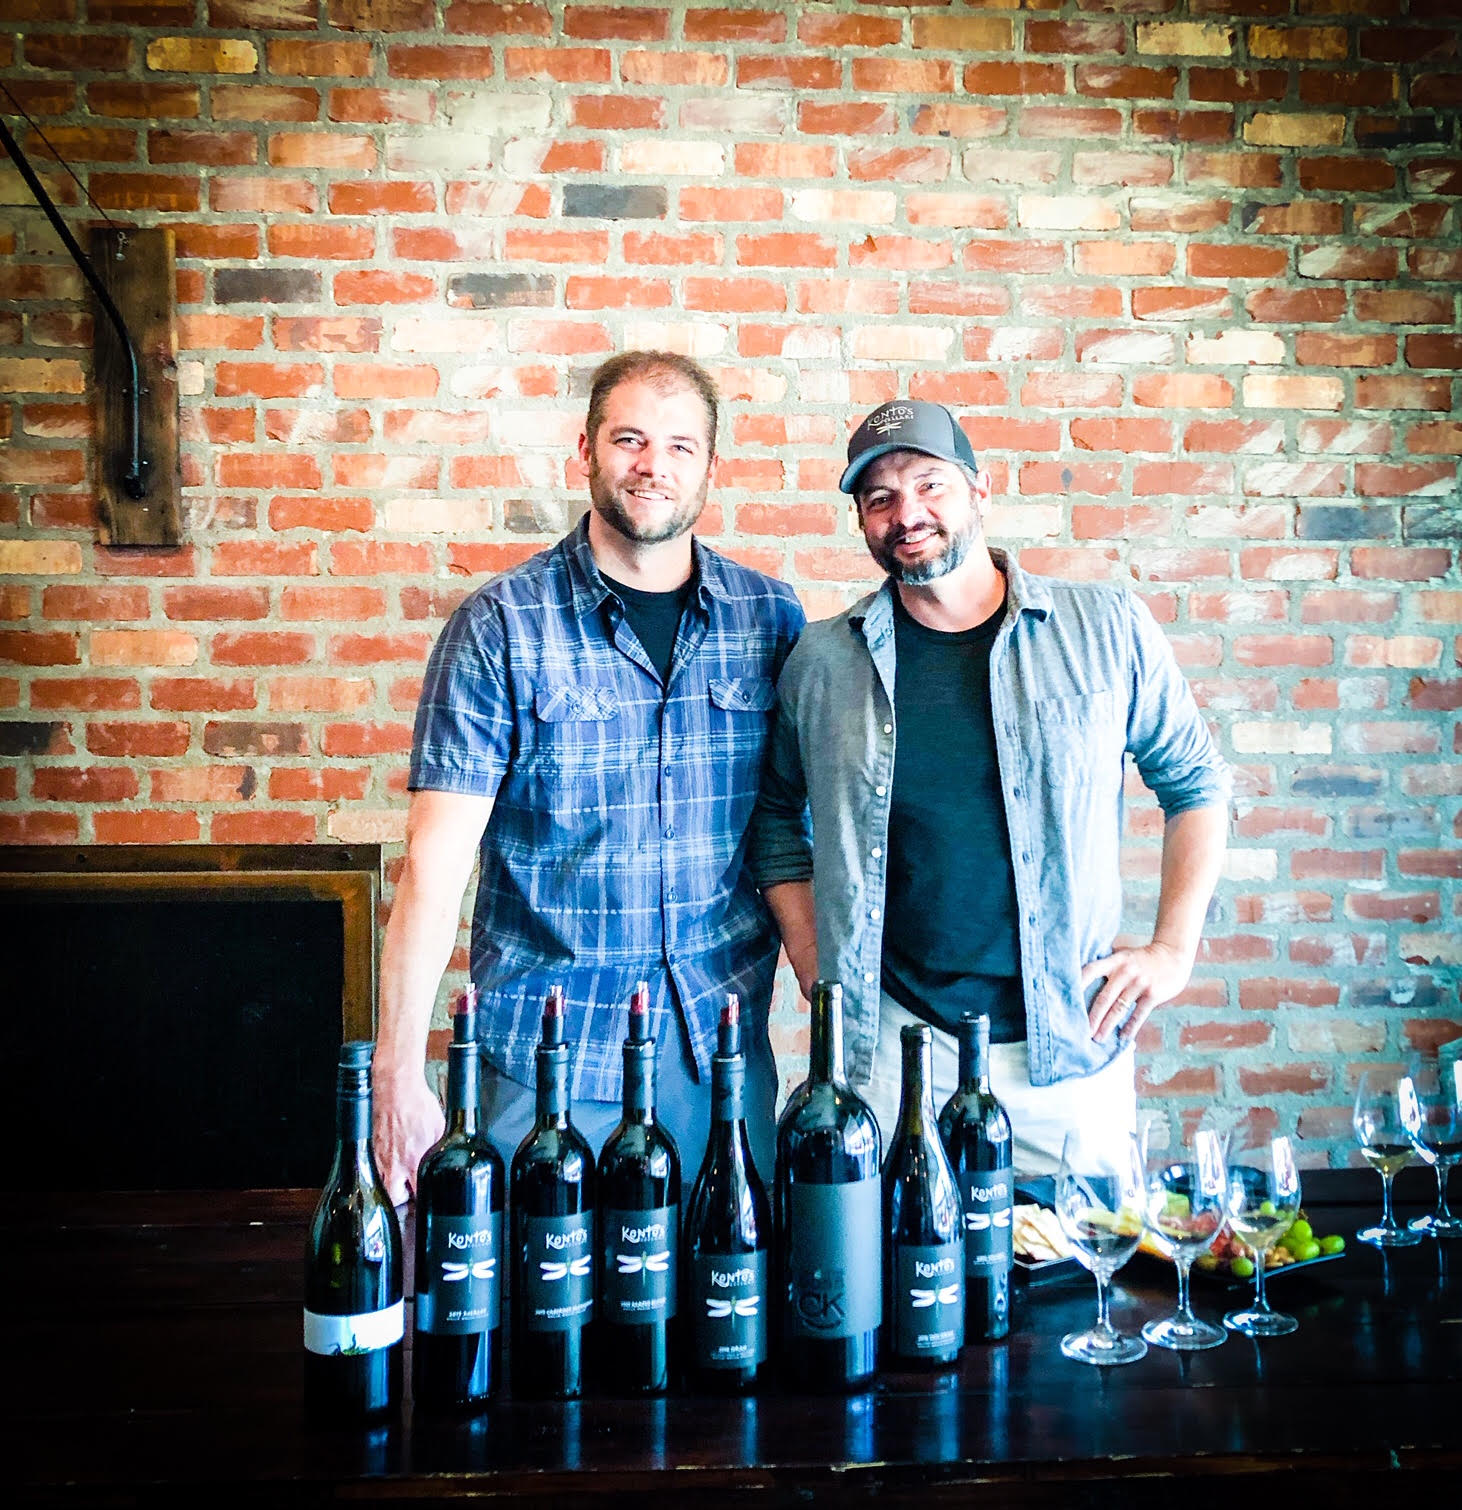 Pictured here are two of the nicest people in Washington wine, Cameron (L) and Chris Kontos.